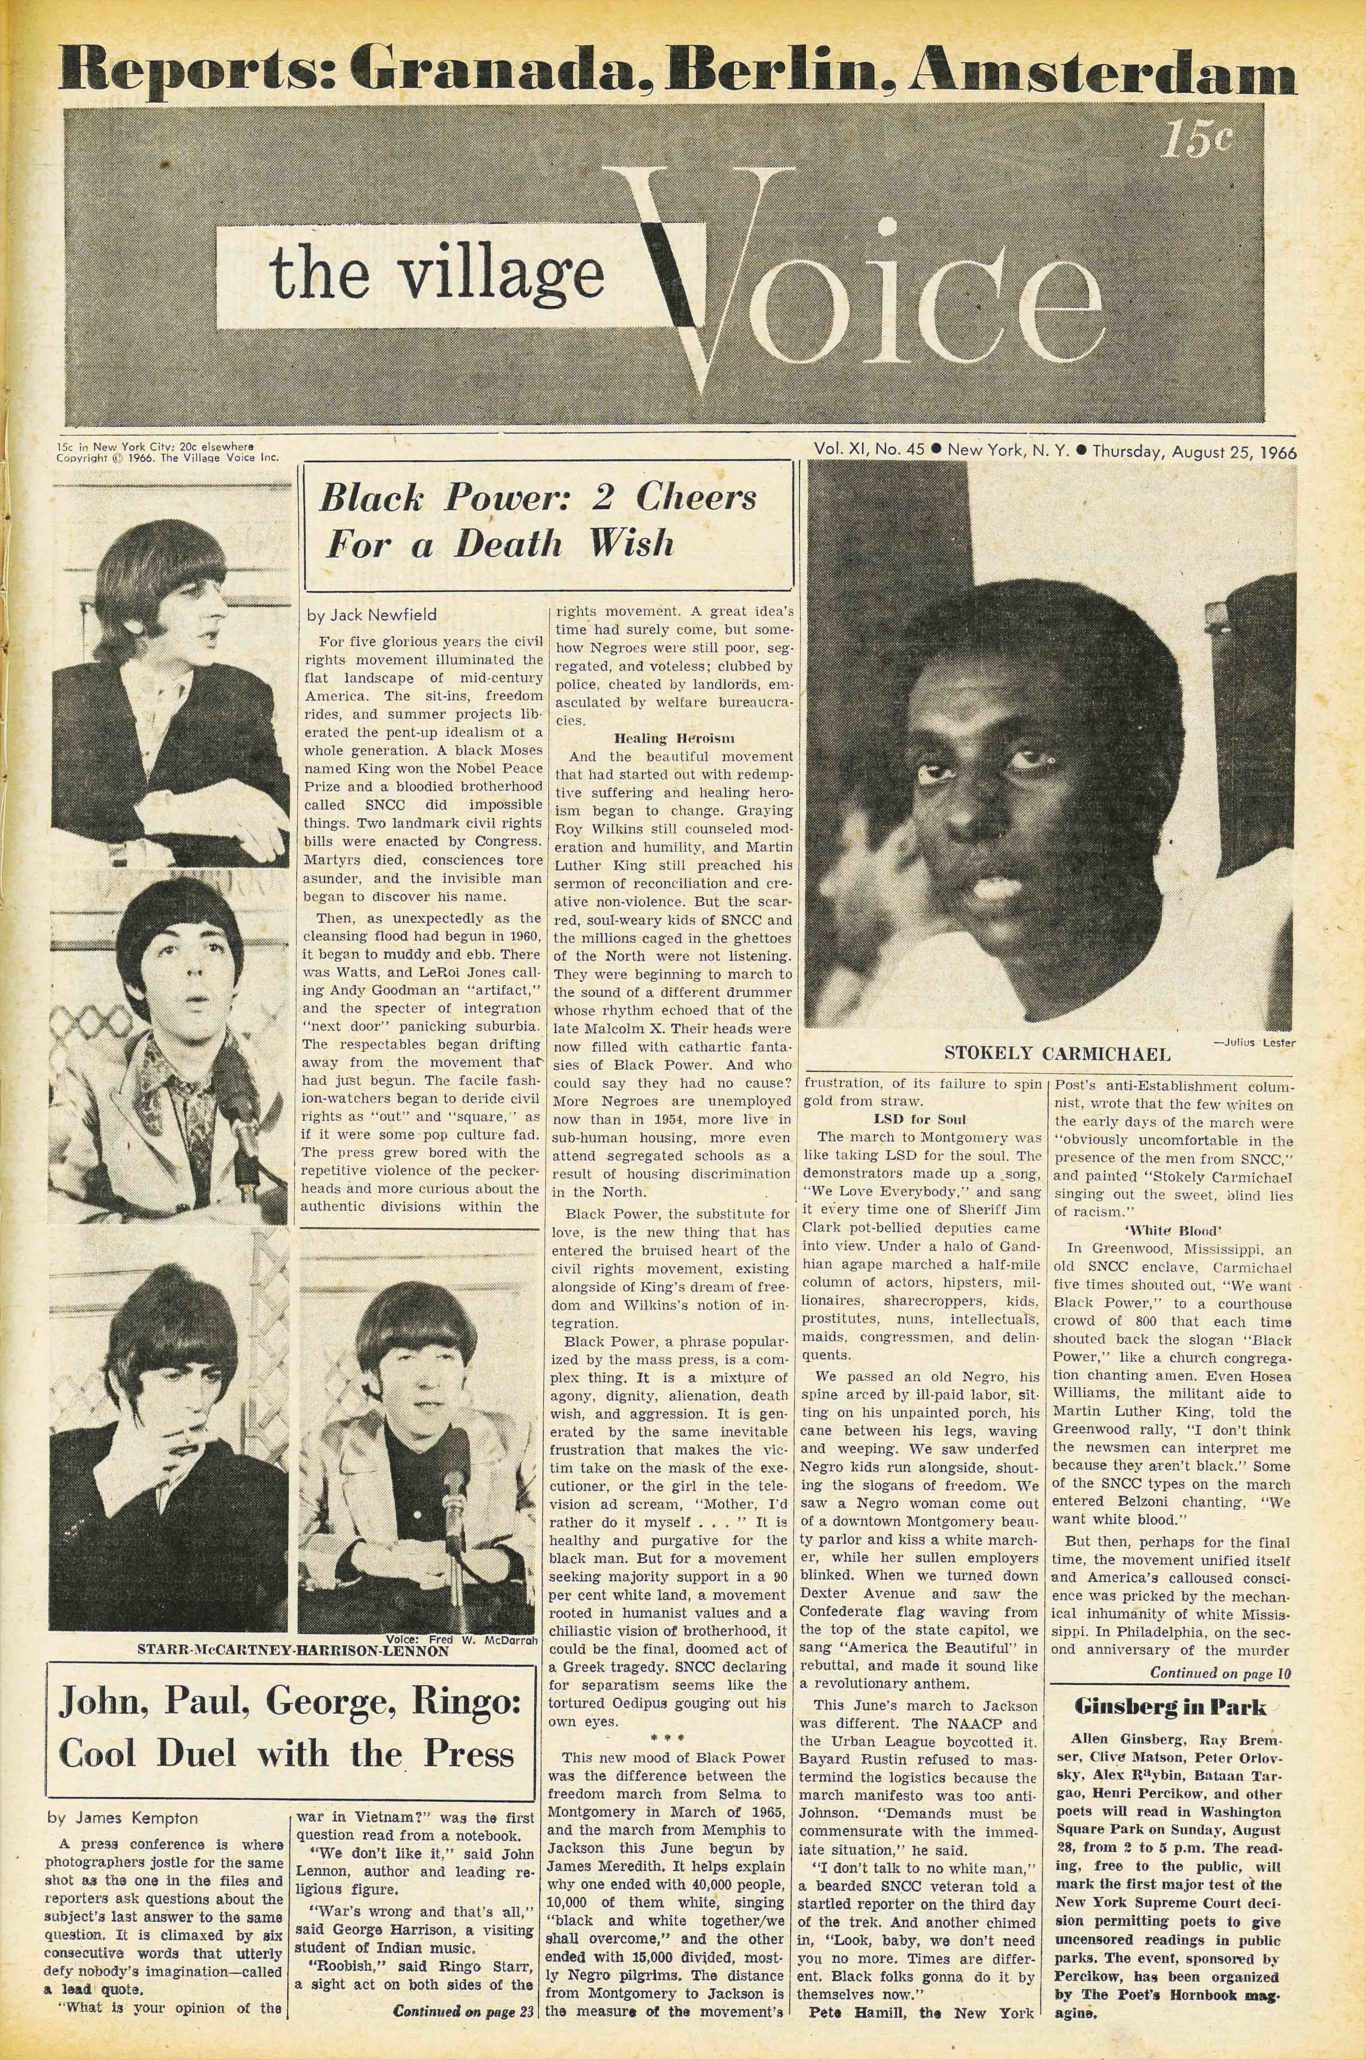 John, Paul, George, Ringo: Cool Duel With the Press